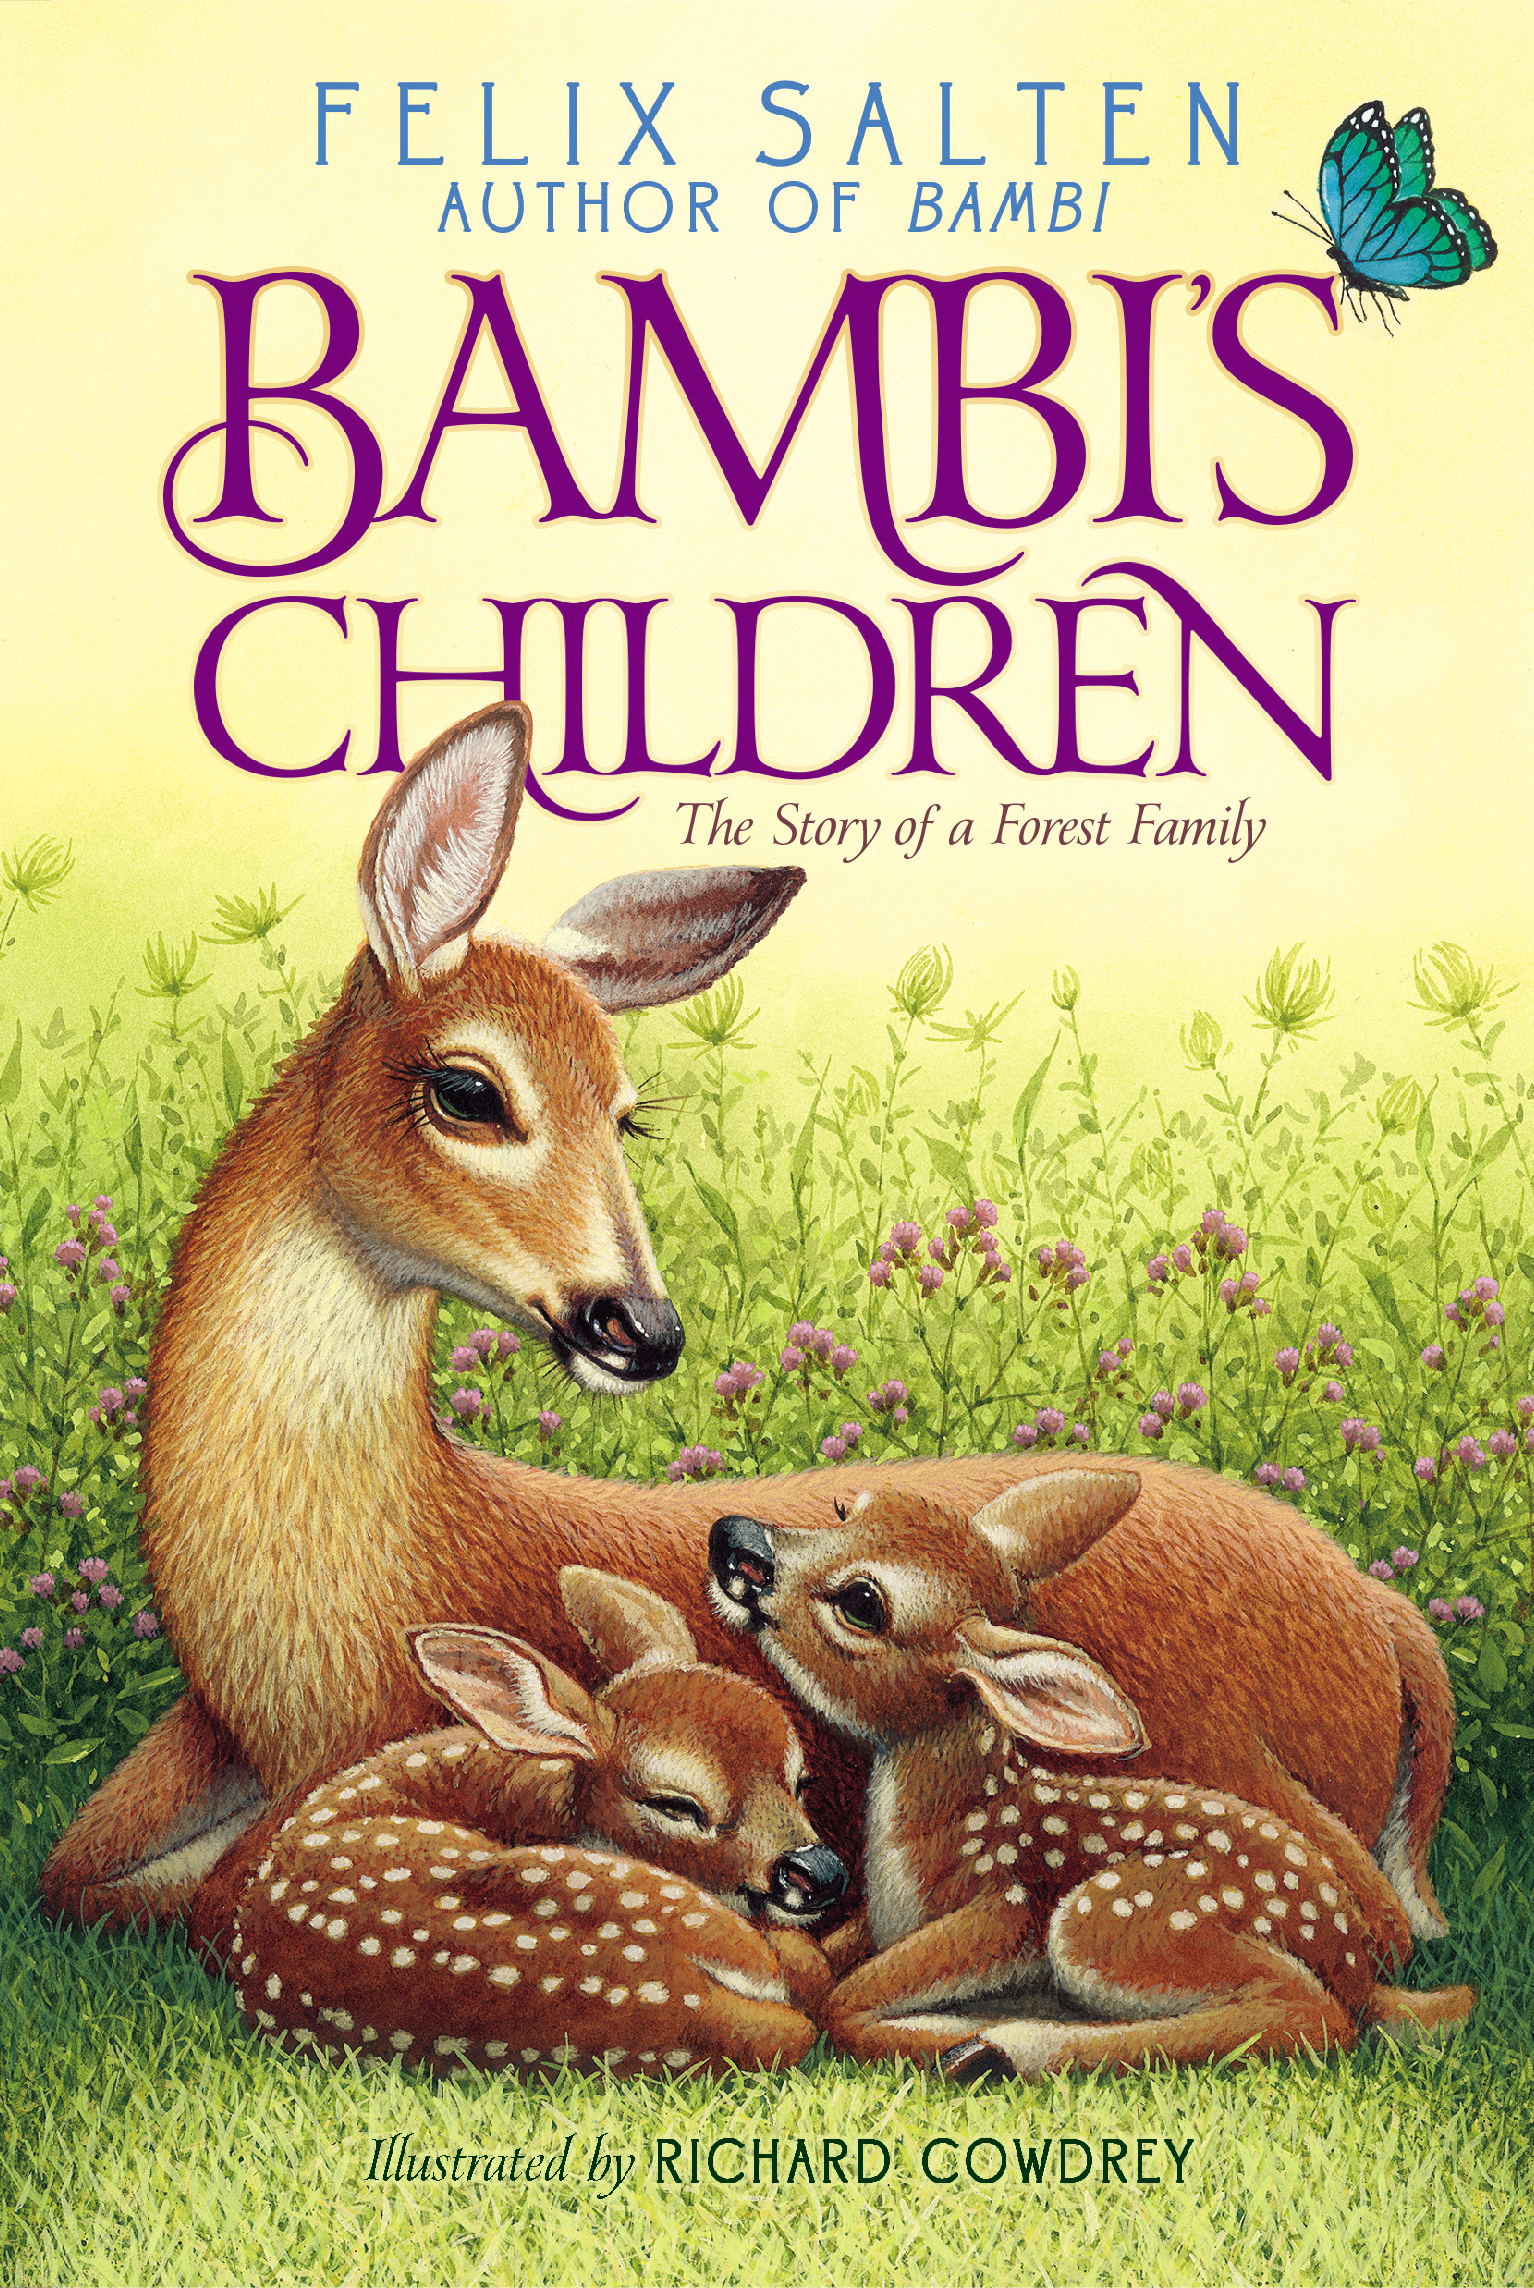 Bambis classic animal tales books by felix salten whittaker bambis children bambis children bambis children the hound of florence fandeluxe Ebook collections